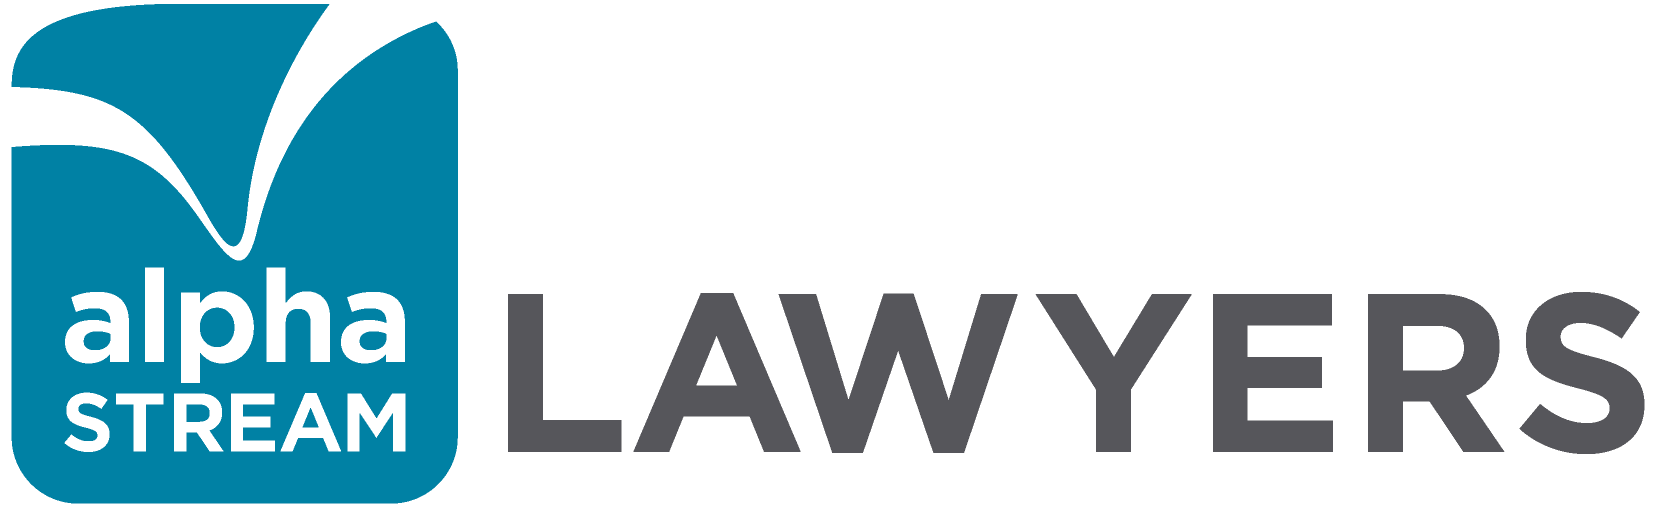 Alphastream Lawyers